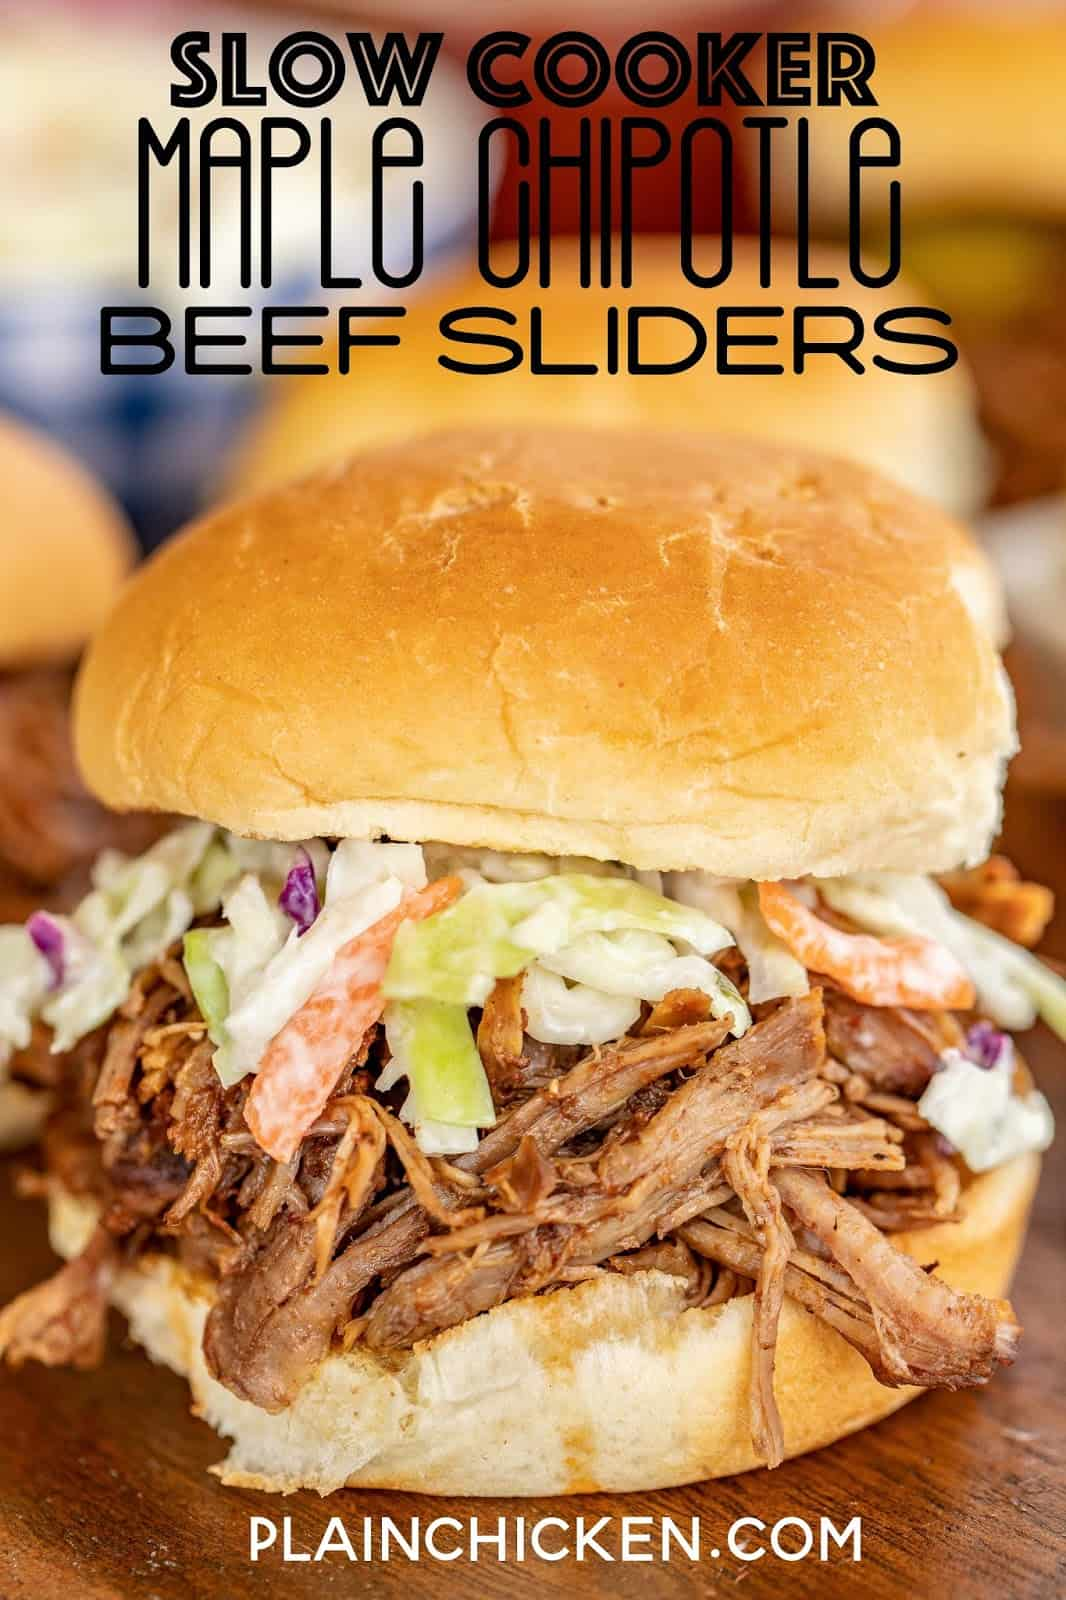 shredded beef sandwiches topped with slaw